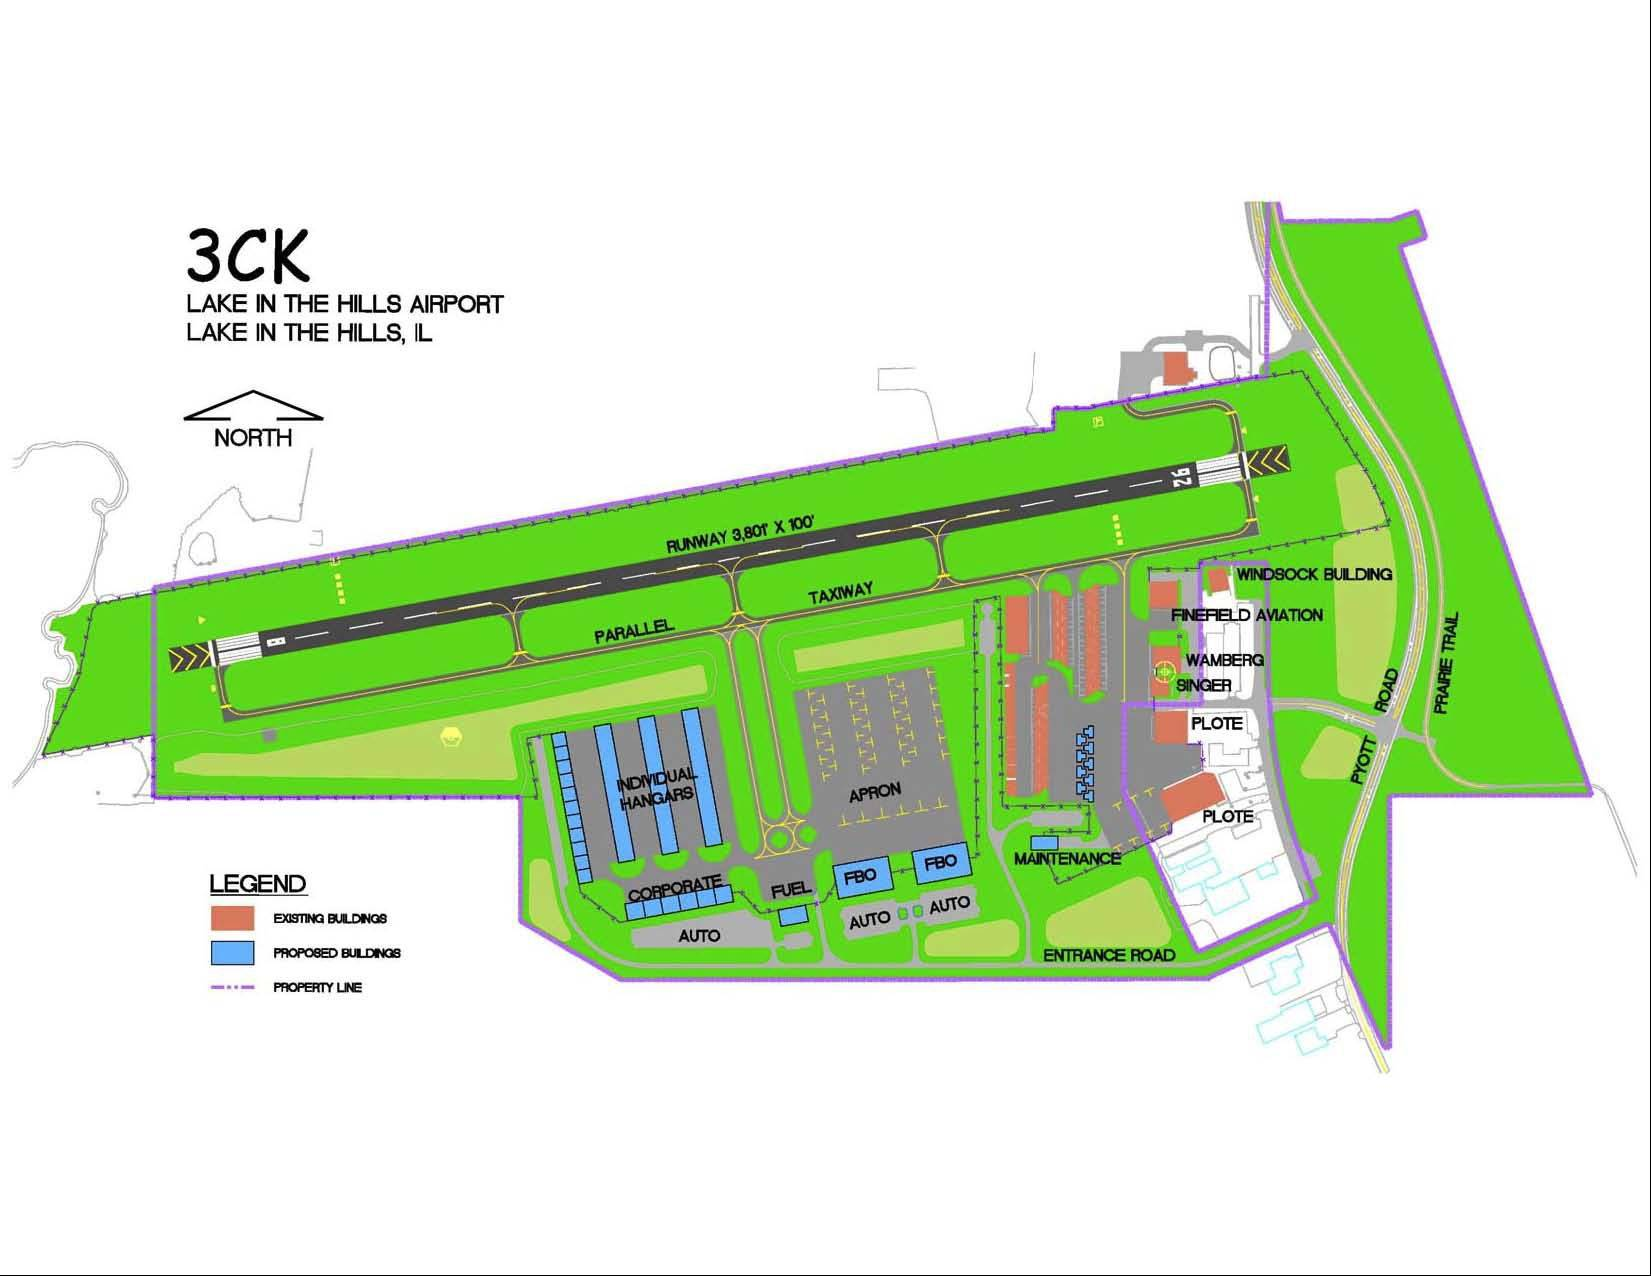 The safety improvements planned for the Lake in the Hills Airport include rebuilding and widening the current runway in 2022.